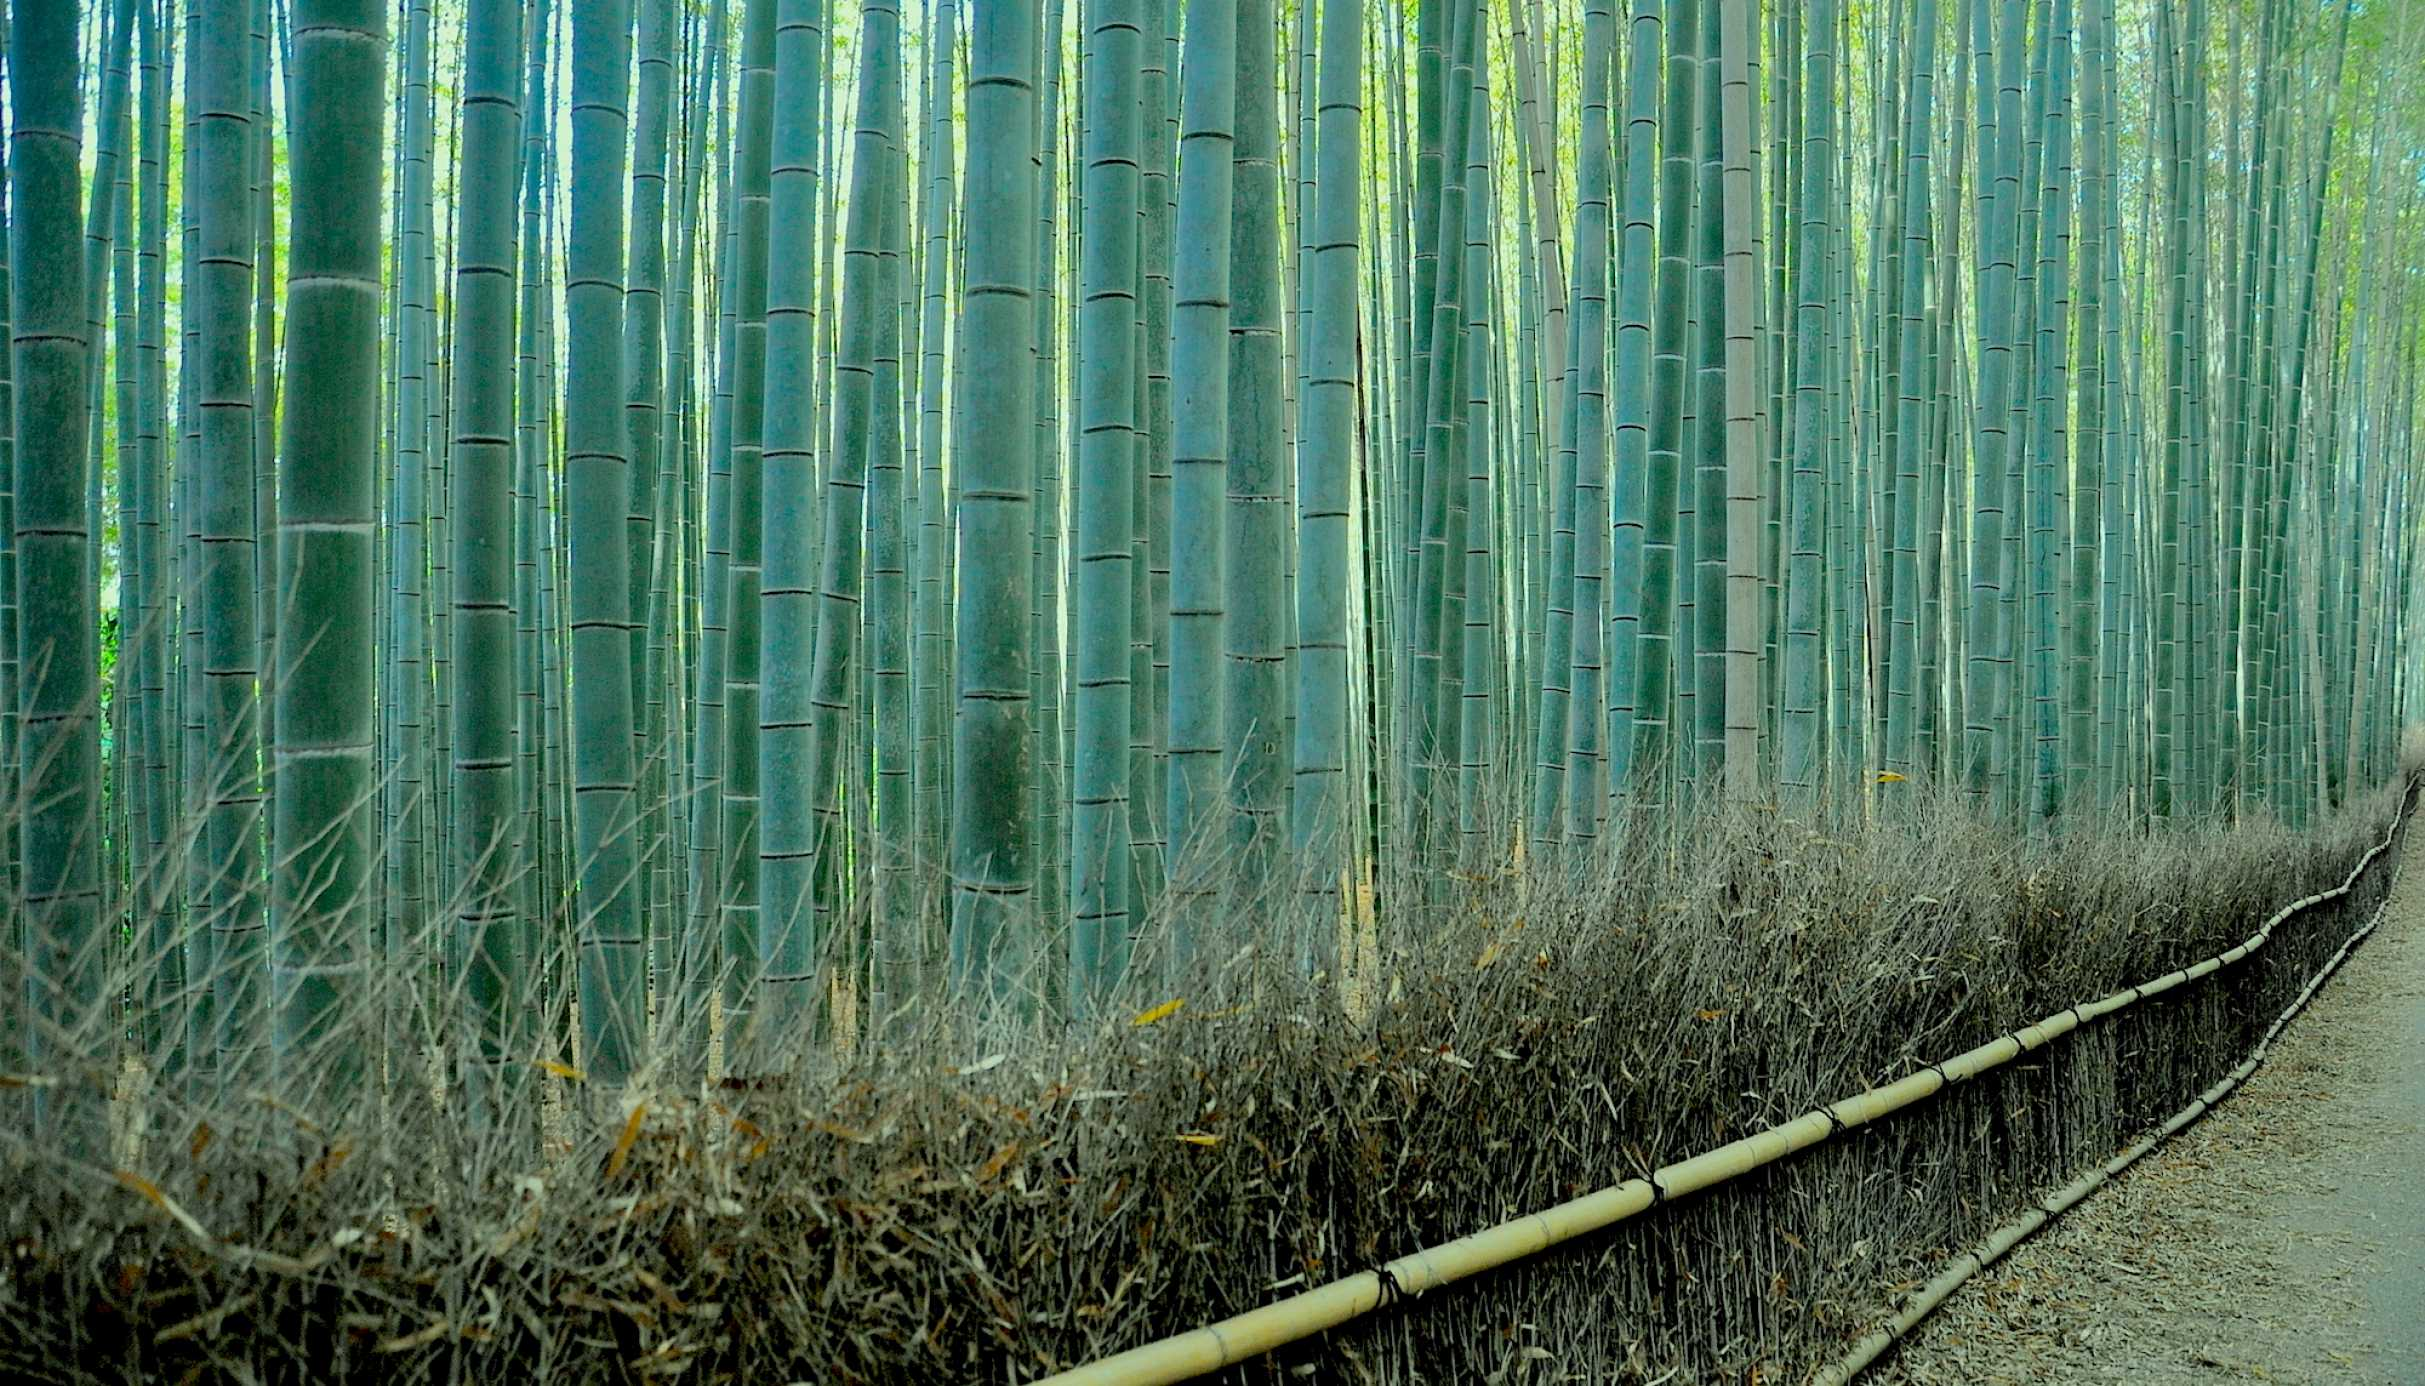 sagano bamboo forest in kyoto one of world's prettiest groves cnn